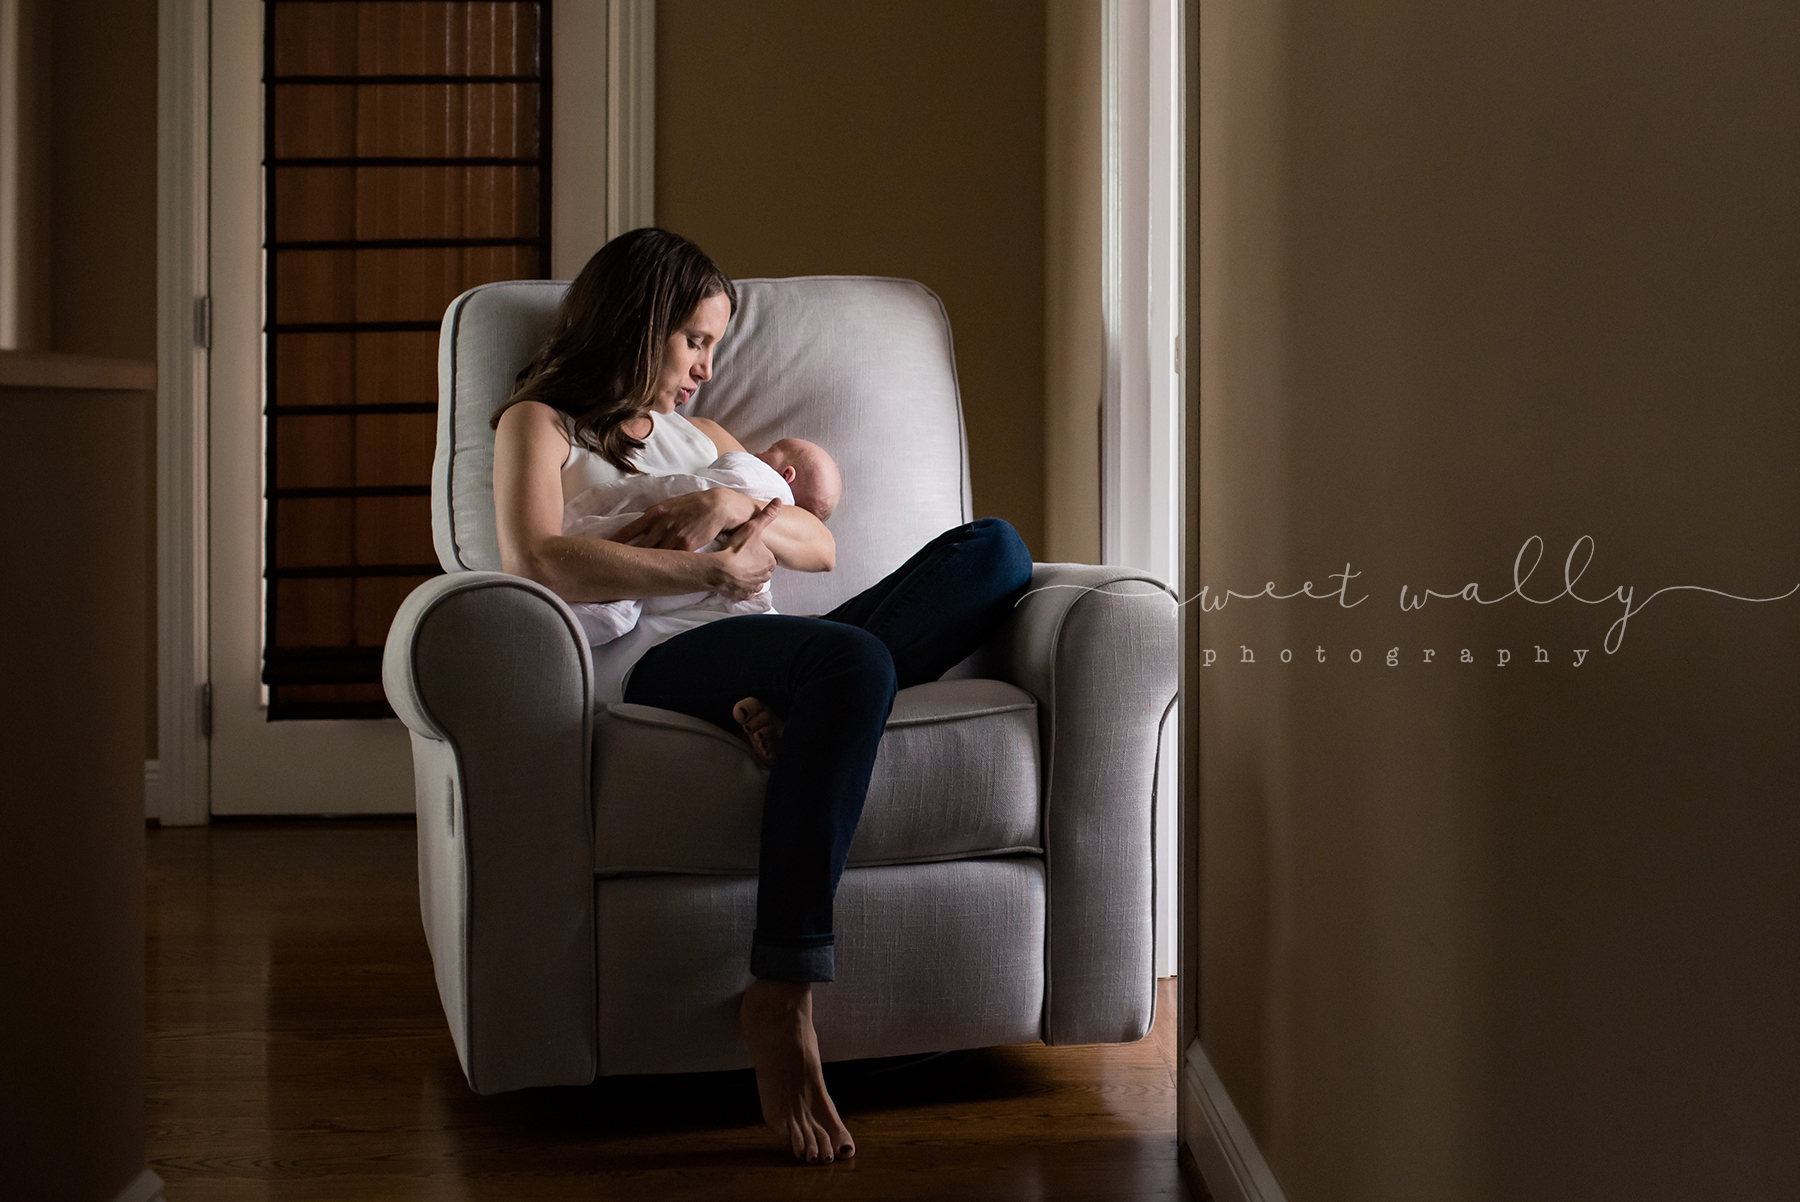 Rocking baby | Newborn Lifestyle Session by Sweet Wally Photography | Nashville TN